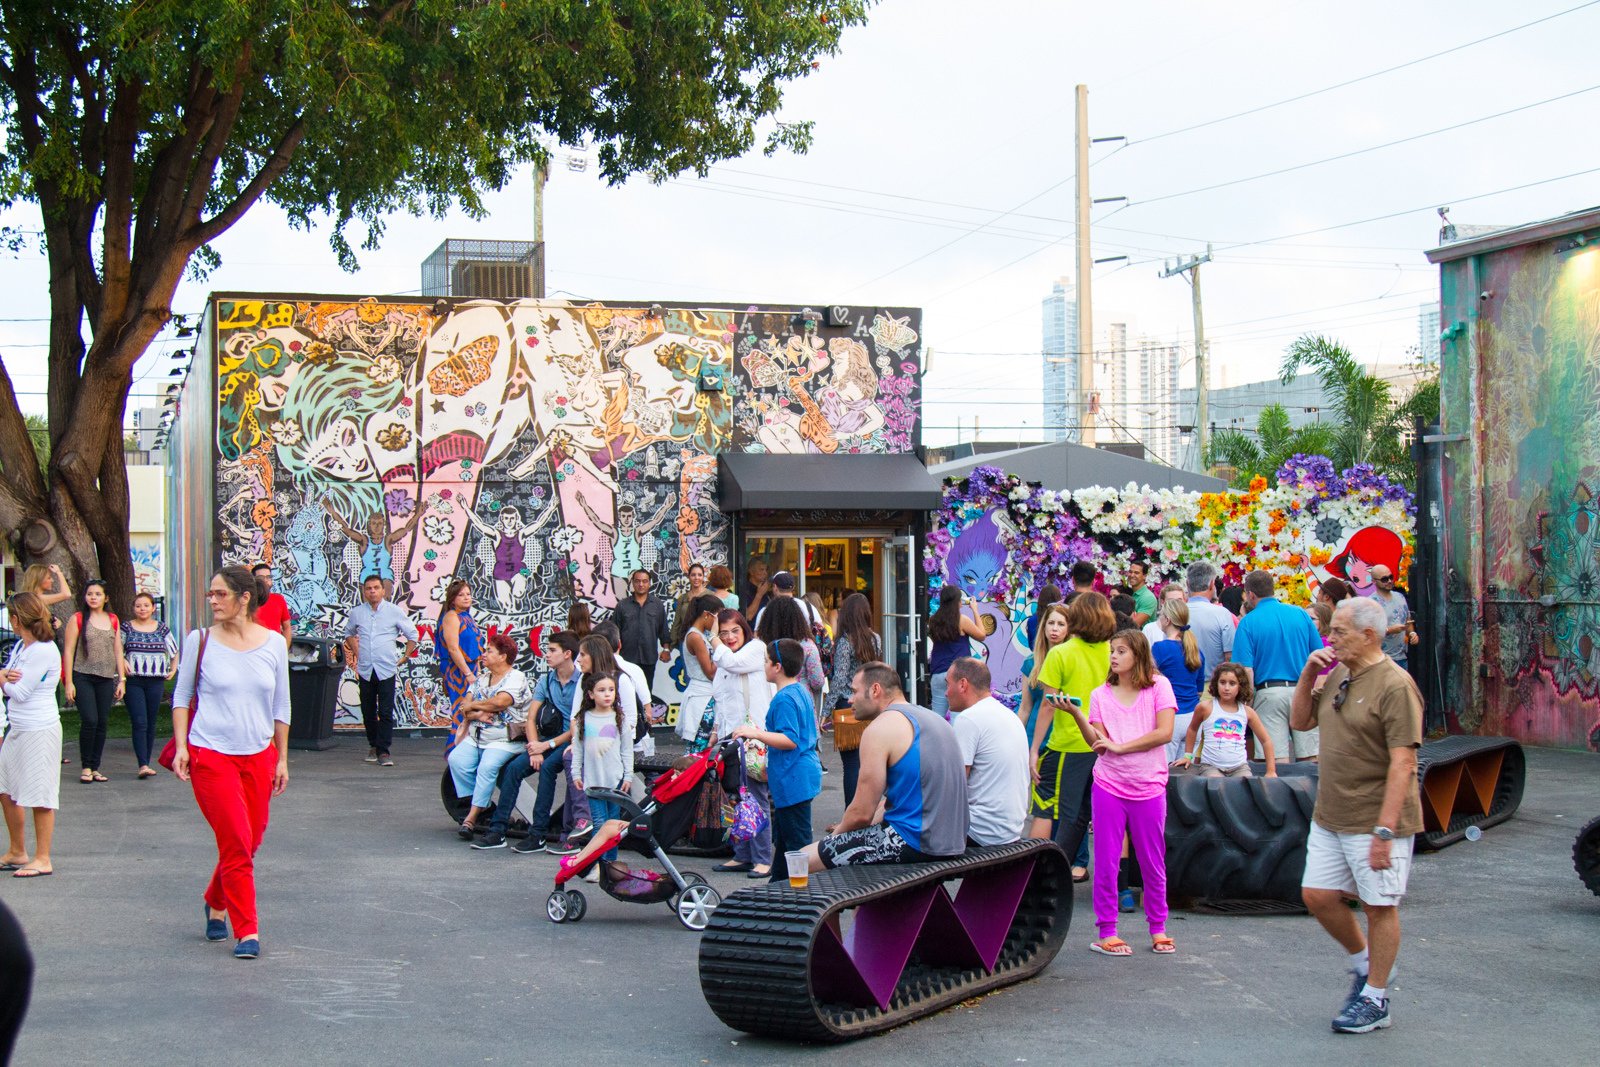 Art Murals at Wynwood is one of the best things to do in Miami. Wynwood is a neighborhood in Miami Florida which has a strong art culture presence and murals can be seen everywhere. Your guide for all the top Miami attractions and best things to do in Miami. There are Plenty of tourist attractions in Miami Florida. This Guide presented by Flying and Travel.